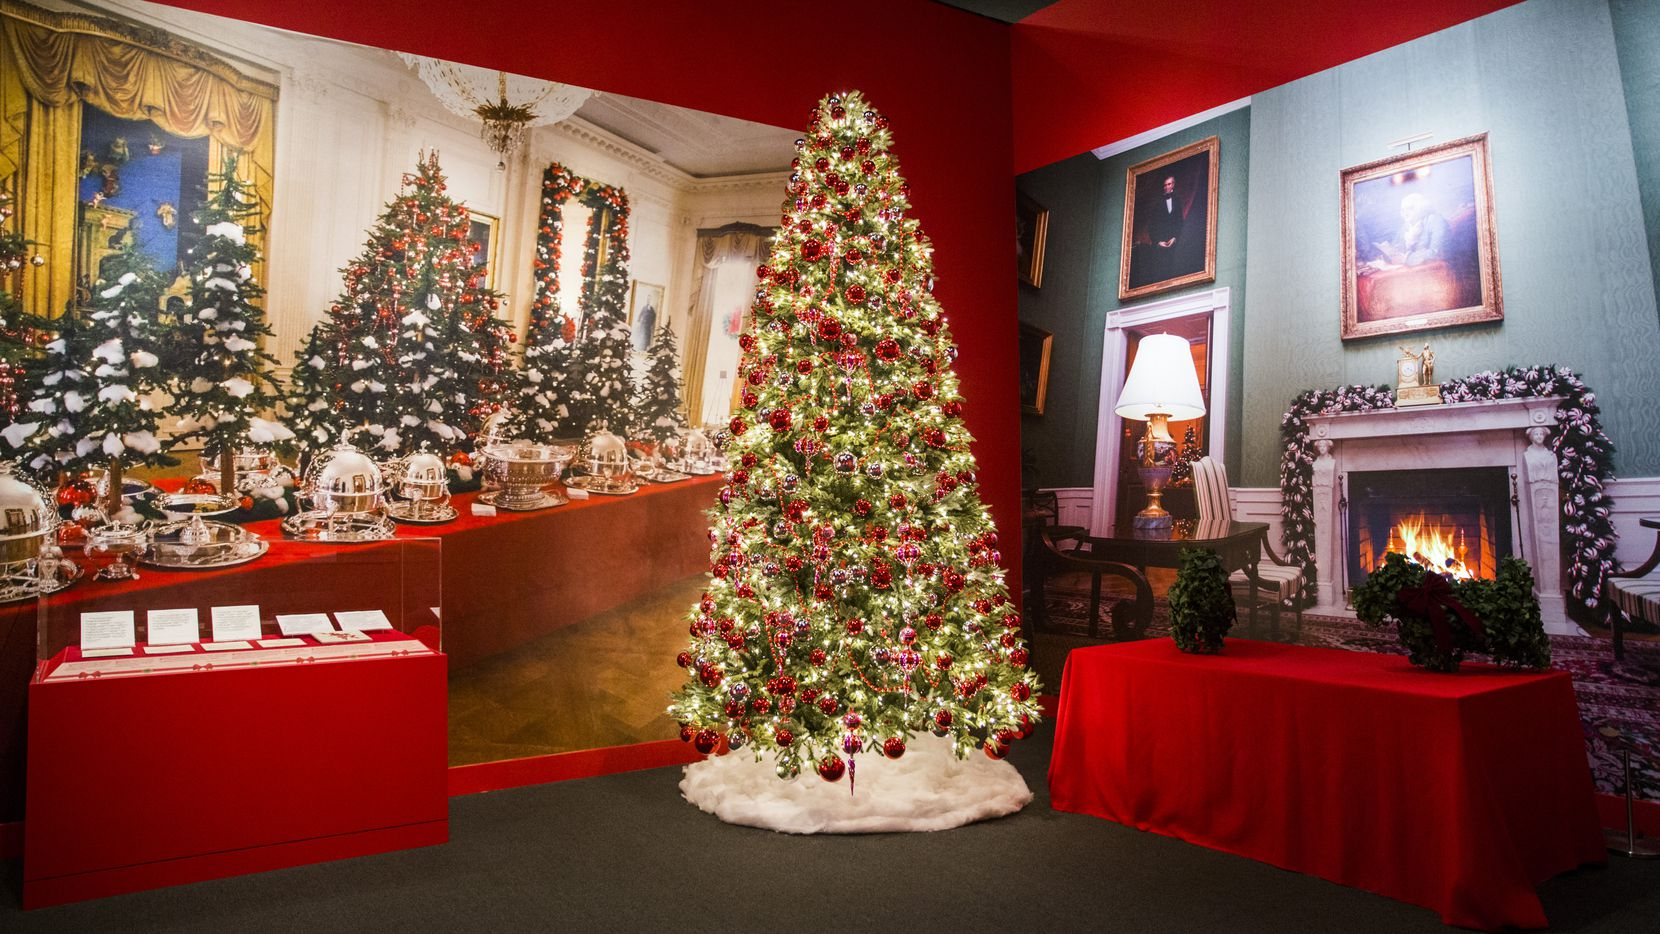 Decorations from the East Room are displayed at a Christmas exhibit at The George W. Bush Presidential Center and Library on Thursday, November 15, 2018 on the SMU campus in Dallas. This year's theme is Deck the Halls and Welcome All: Christmas at the White House 2006. (Ashley Landis/The Dallas Morning News)